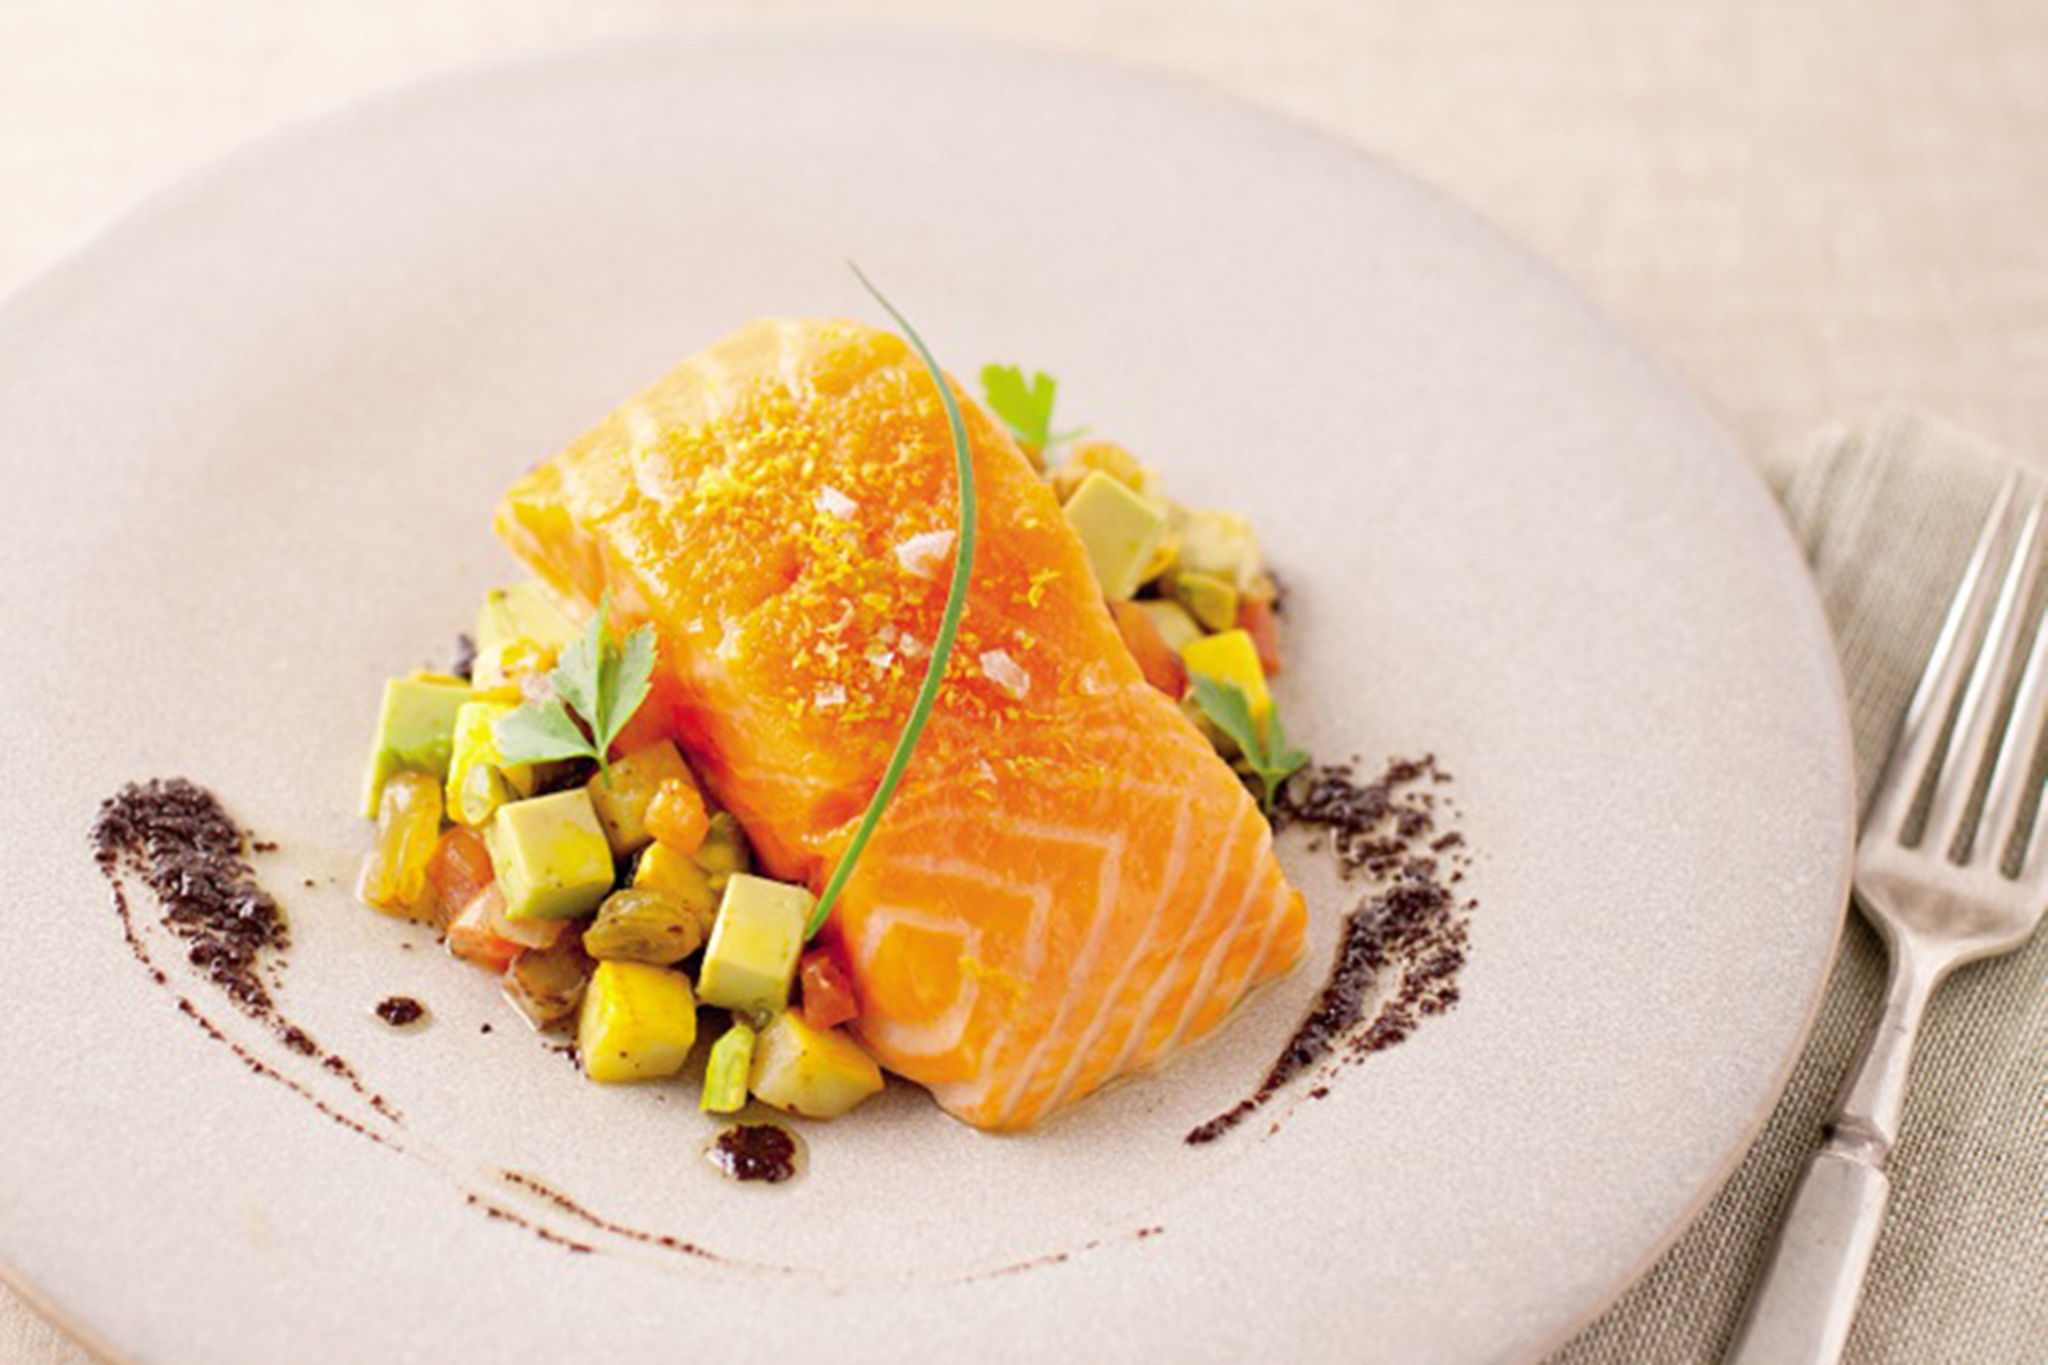 Slow-cooked salmon with pistachio pesto